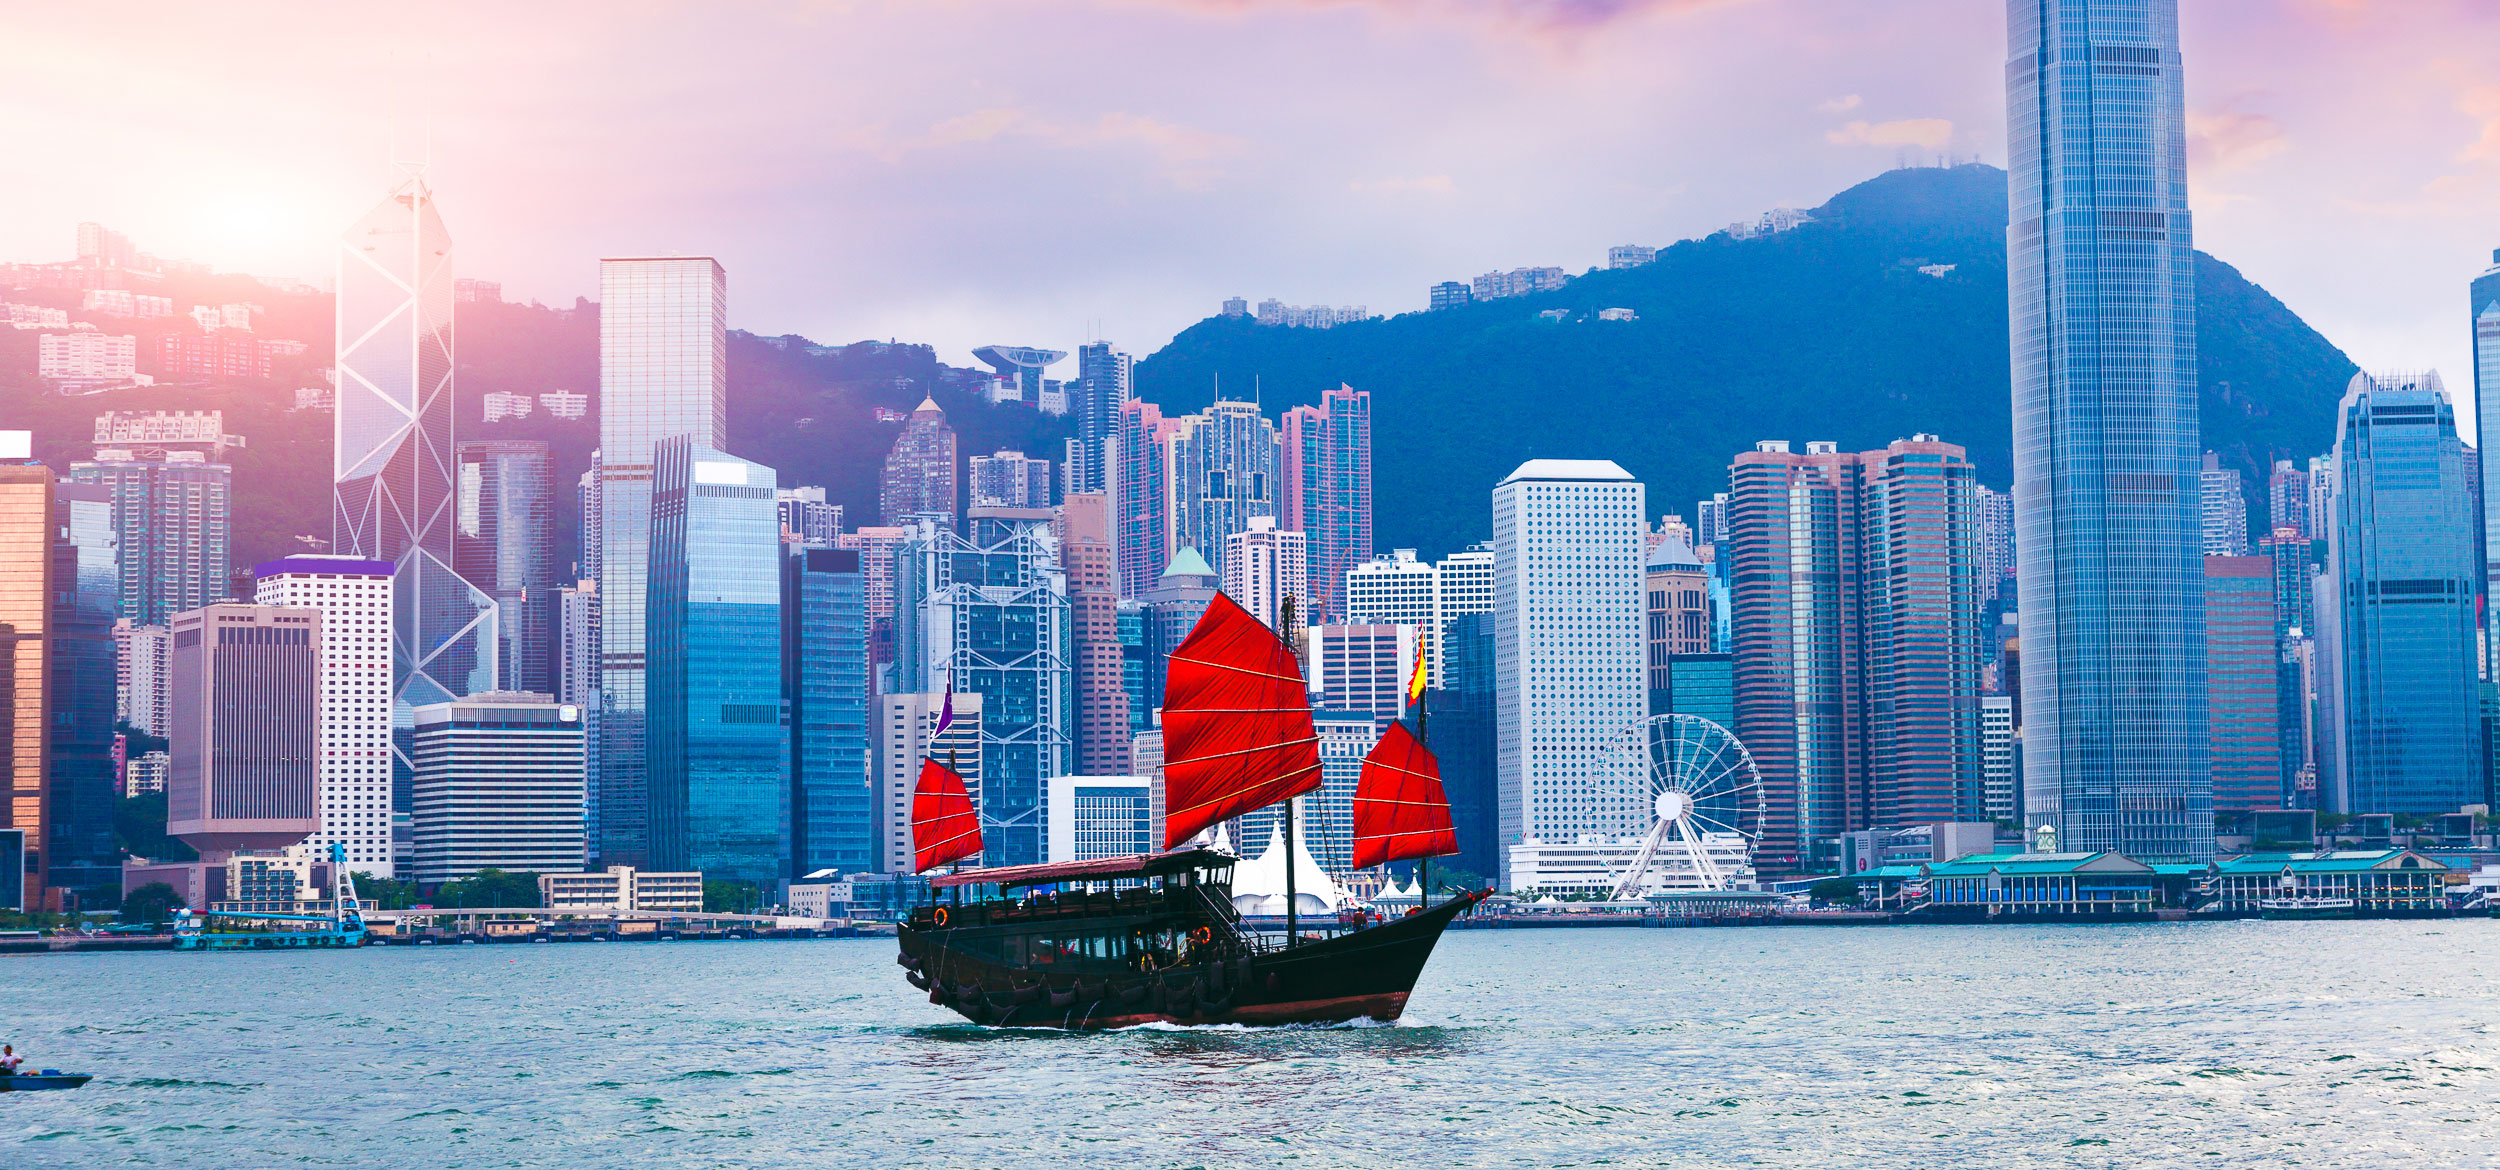 A junk boat with red, square sails crossing the Hong Kong Harbor in Hong Kong.